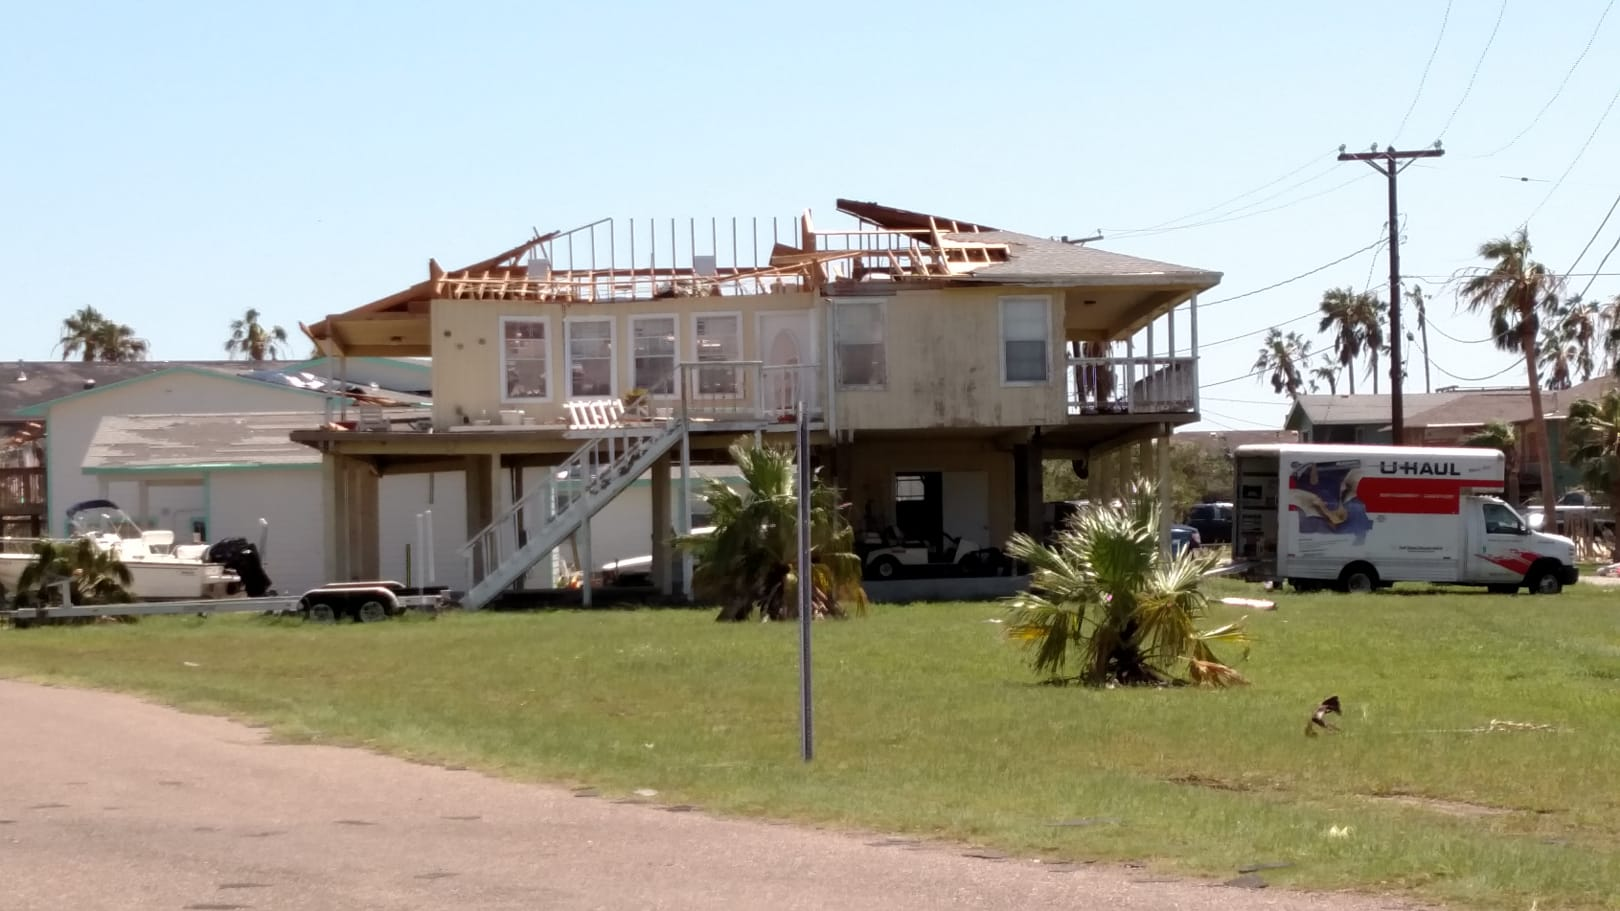 A building damaged by Hurrican Harvey